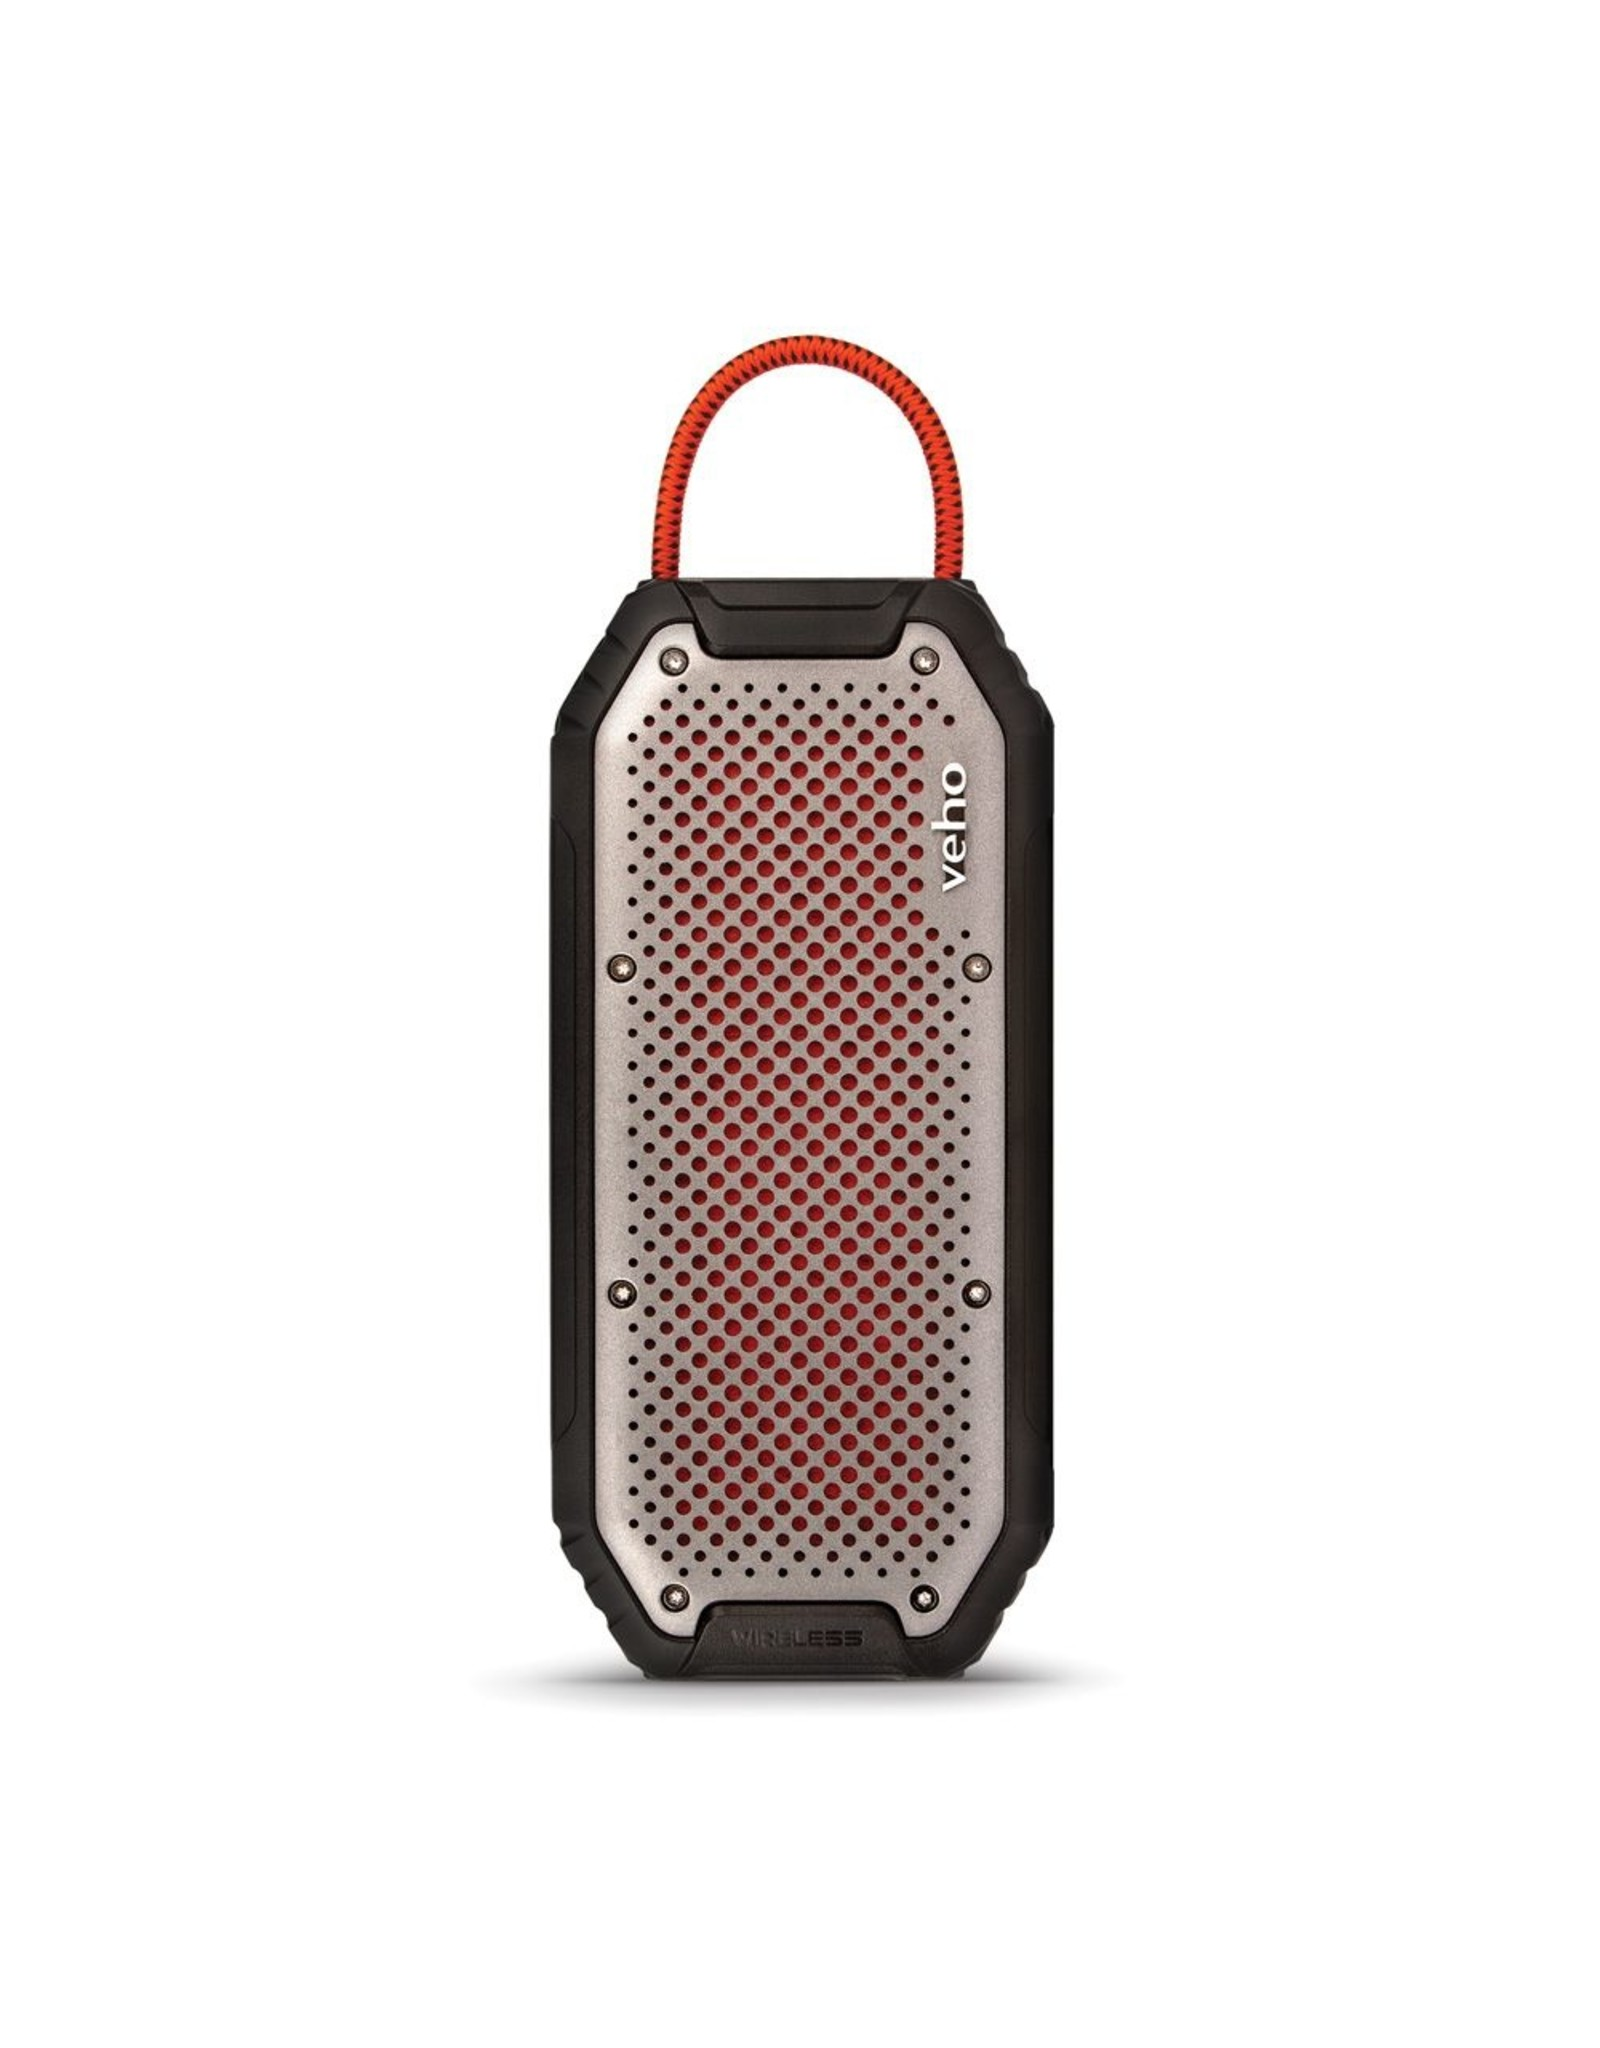 Veho Veho MX-1 Water Resistant Rugged Bluetooth wireless Speaker with built-in power bank